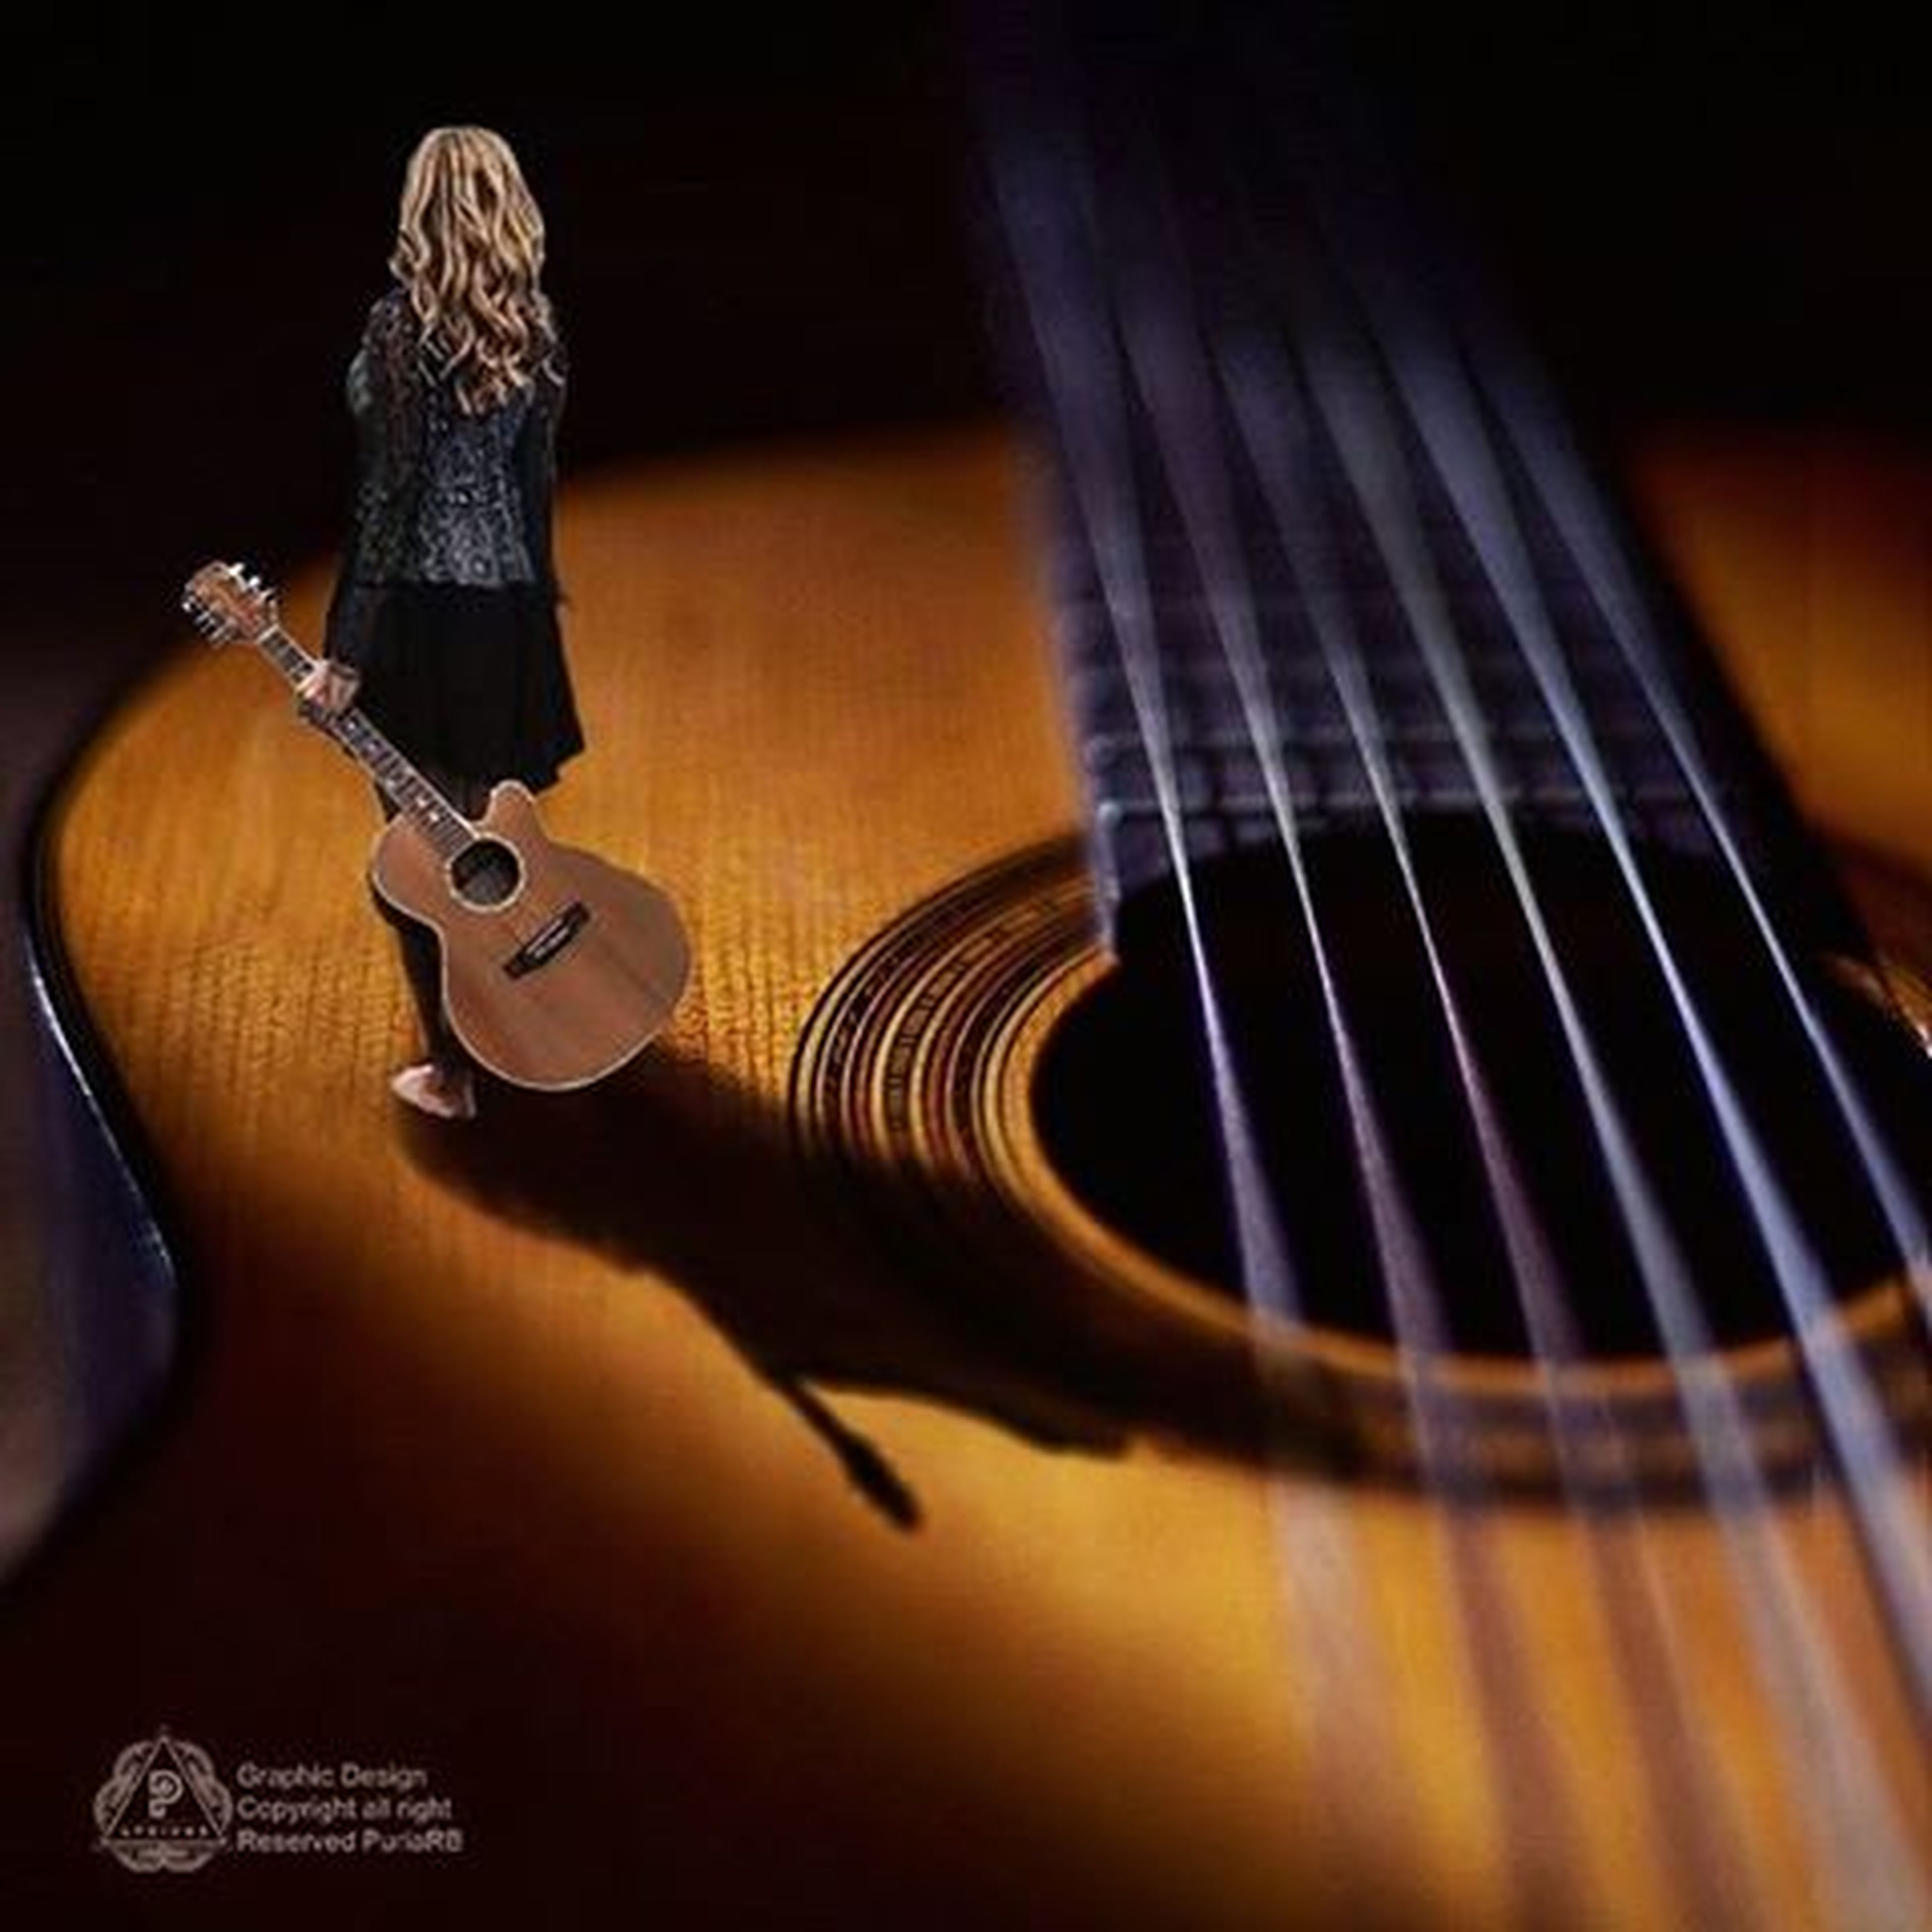 indoors, music, musical instrument, arts culture and entertainment, guitar, musical equipment, close-up, musical instrument string, selective focus, high angle view, shoe, technology, skill, hobbies, part of, string instrument, acoustic guitar, still life